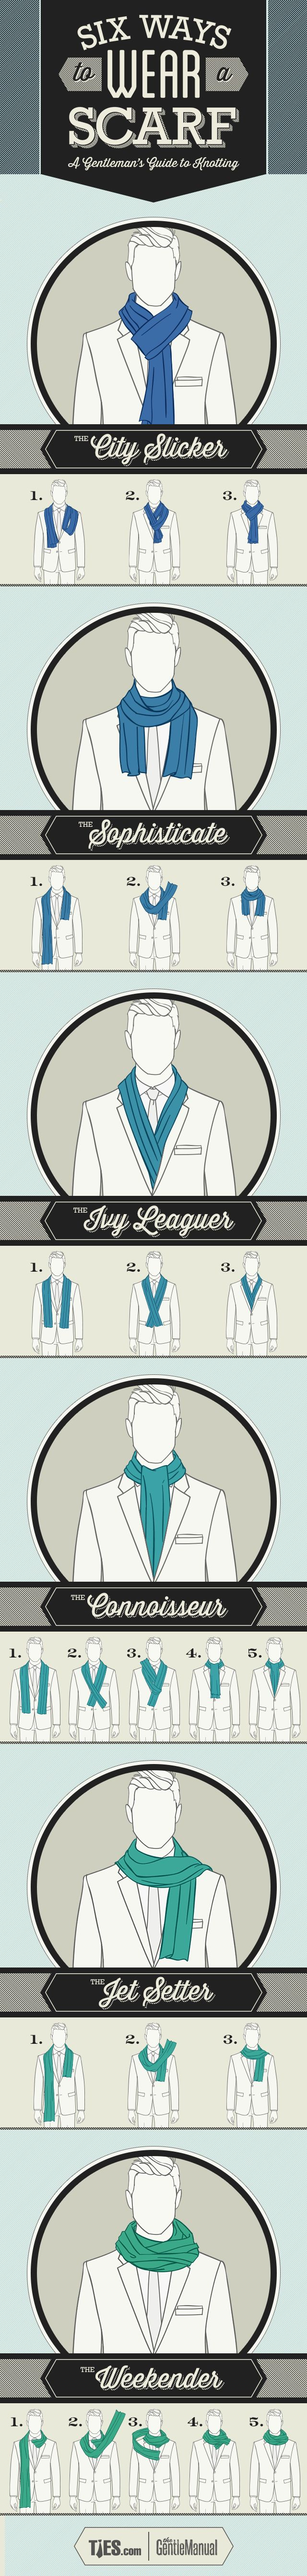 6 Ways to War a Scarf - A Gentleman's Guide to Knotting. TheGentleManual.com